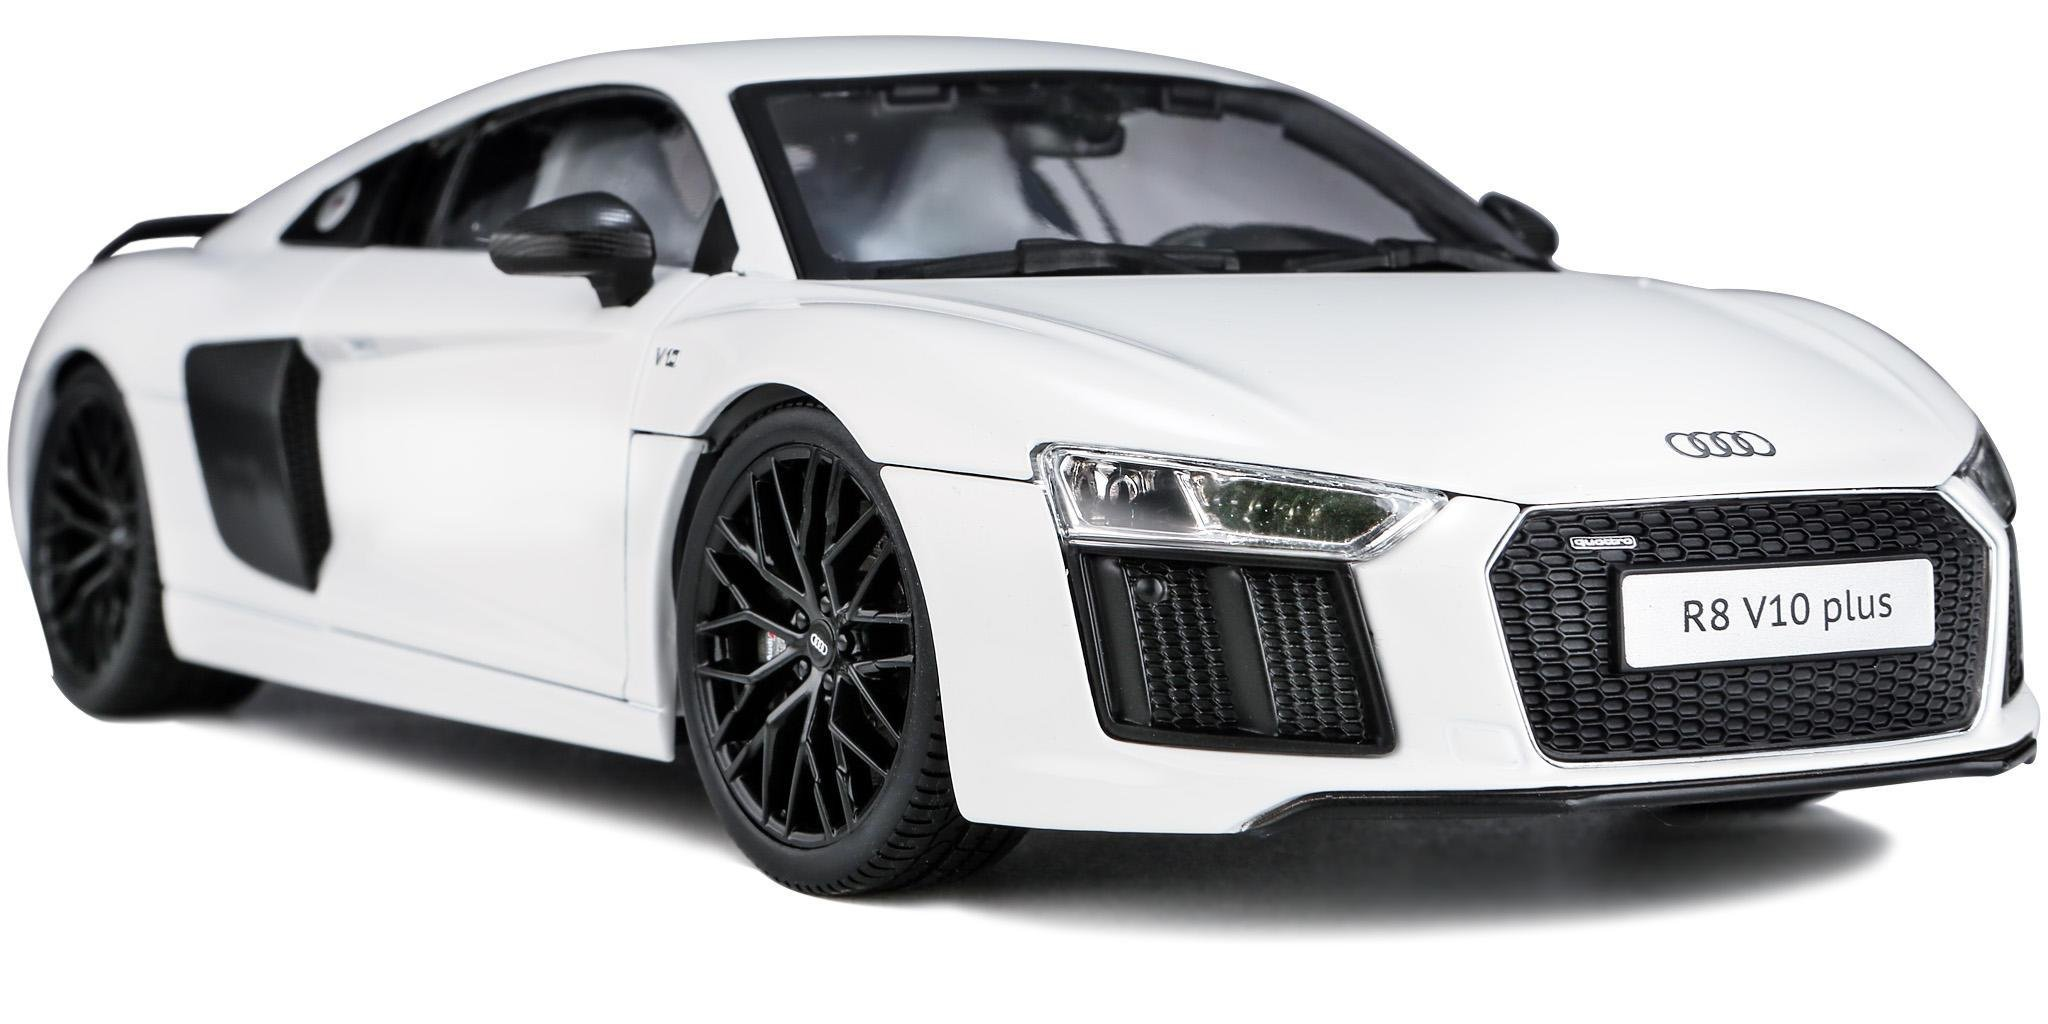 Latest Mesmerizing Audi Toy Car Models – Aratorn Sport Cars Free Download